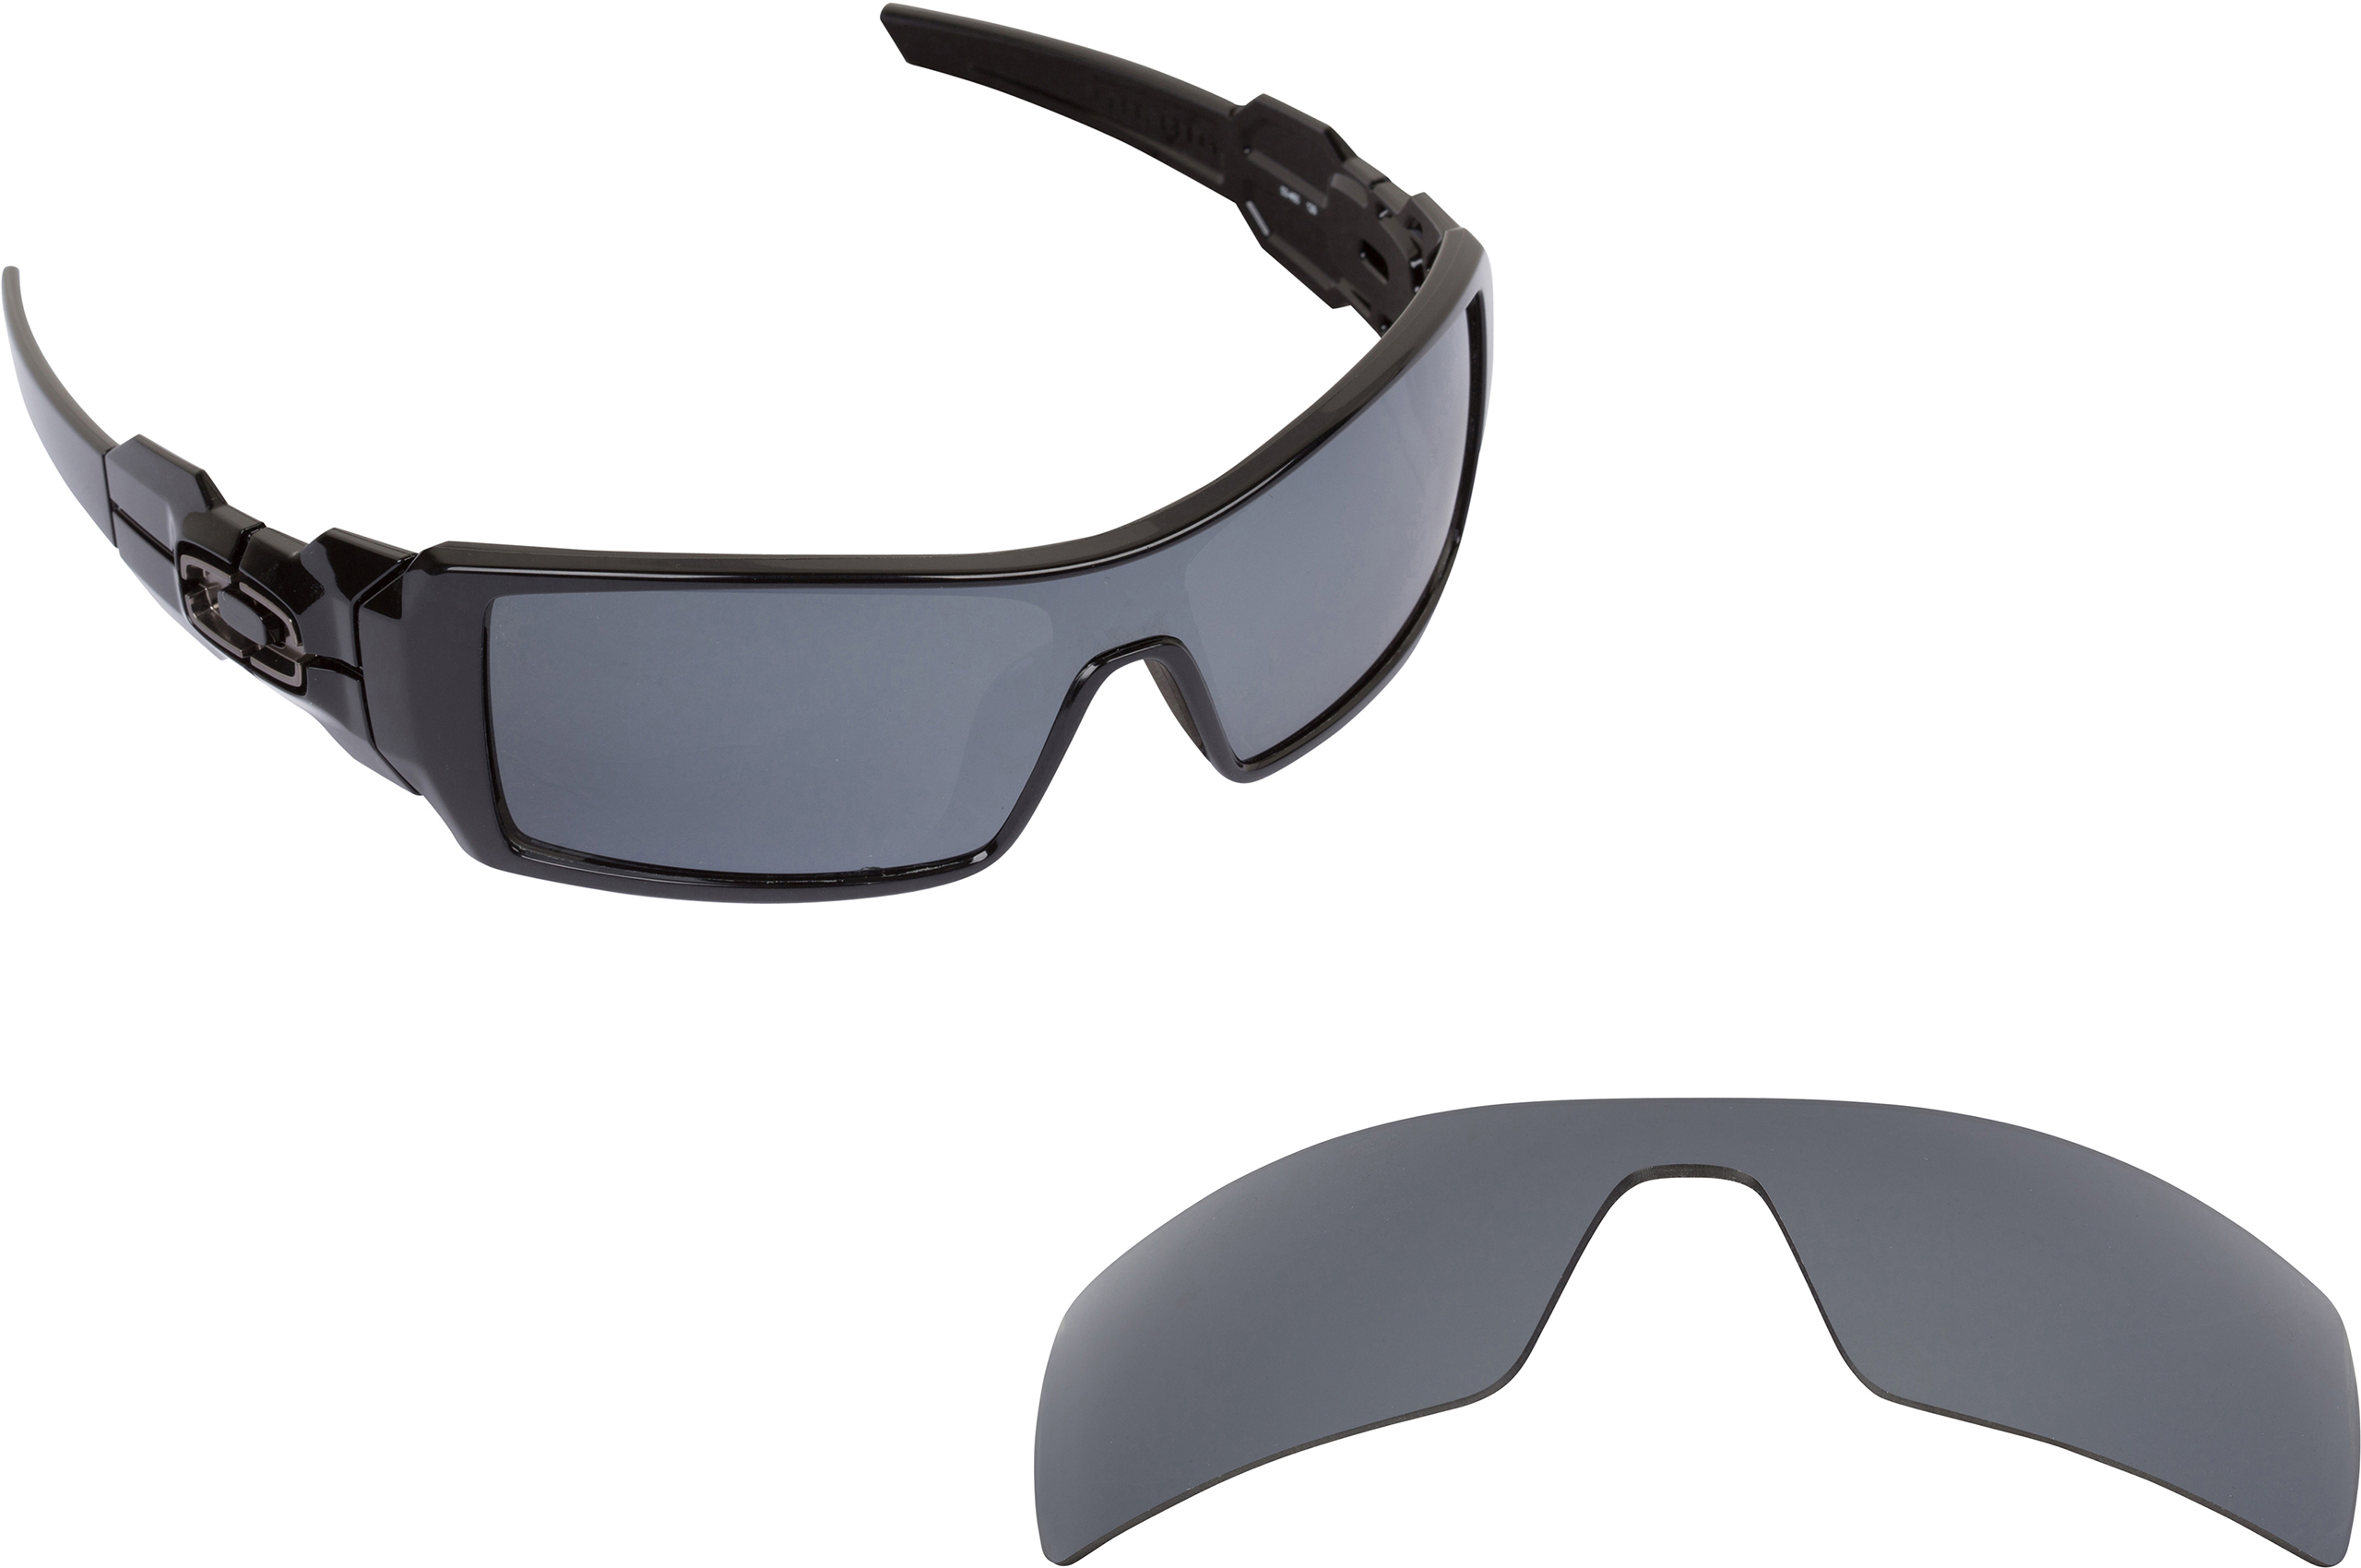 oakley hard knuckle tactical gloves g6fa  oakley 03 614 replacement lenses oakley 03 614 replacement lenses